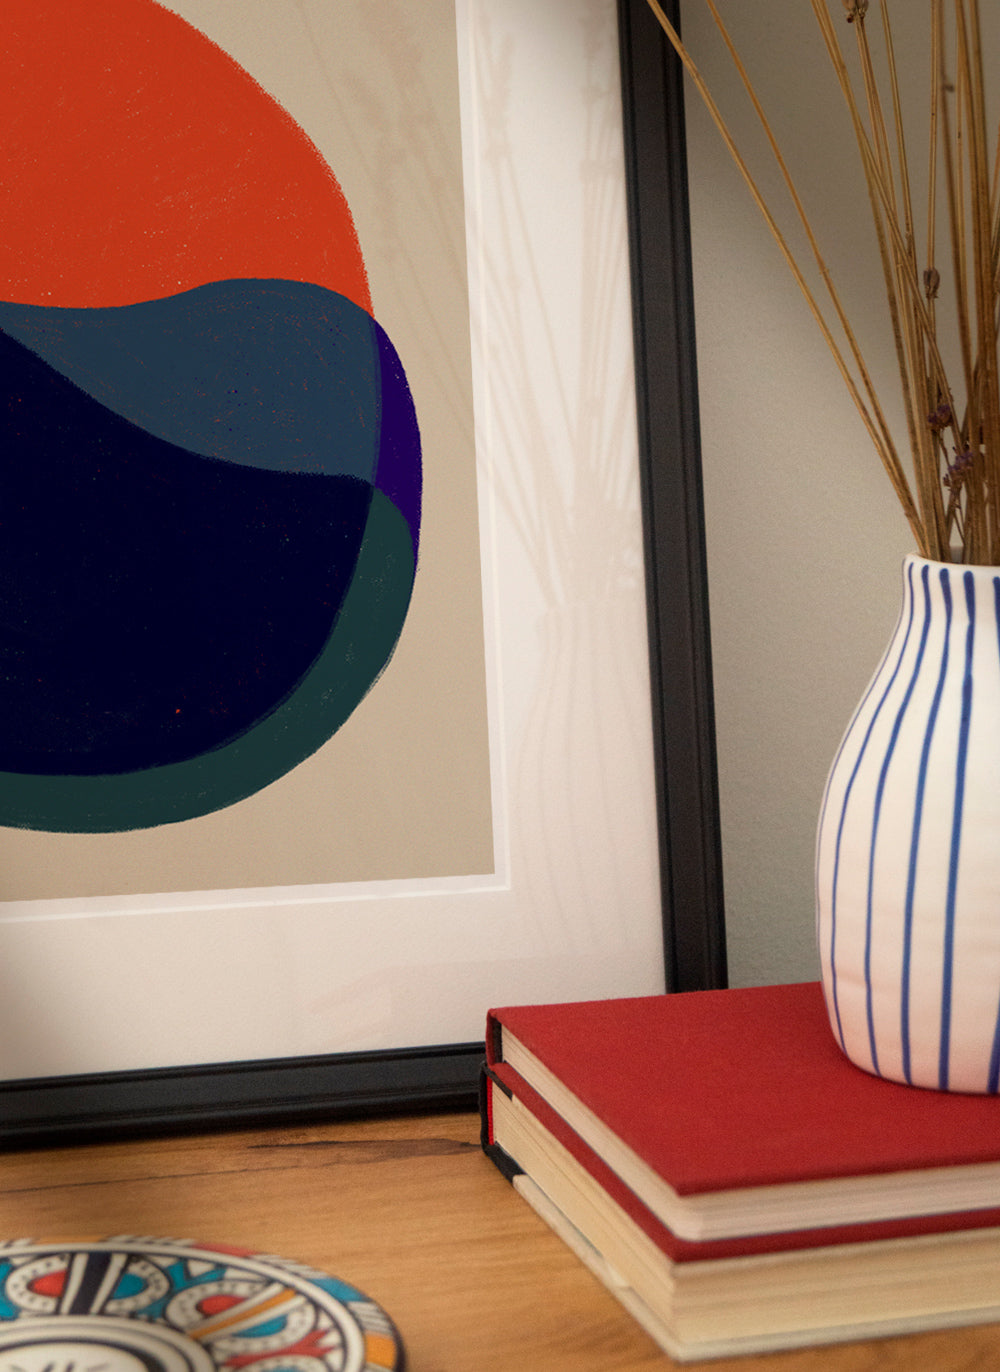 Framed artwork with decor objects